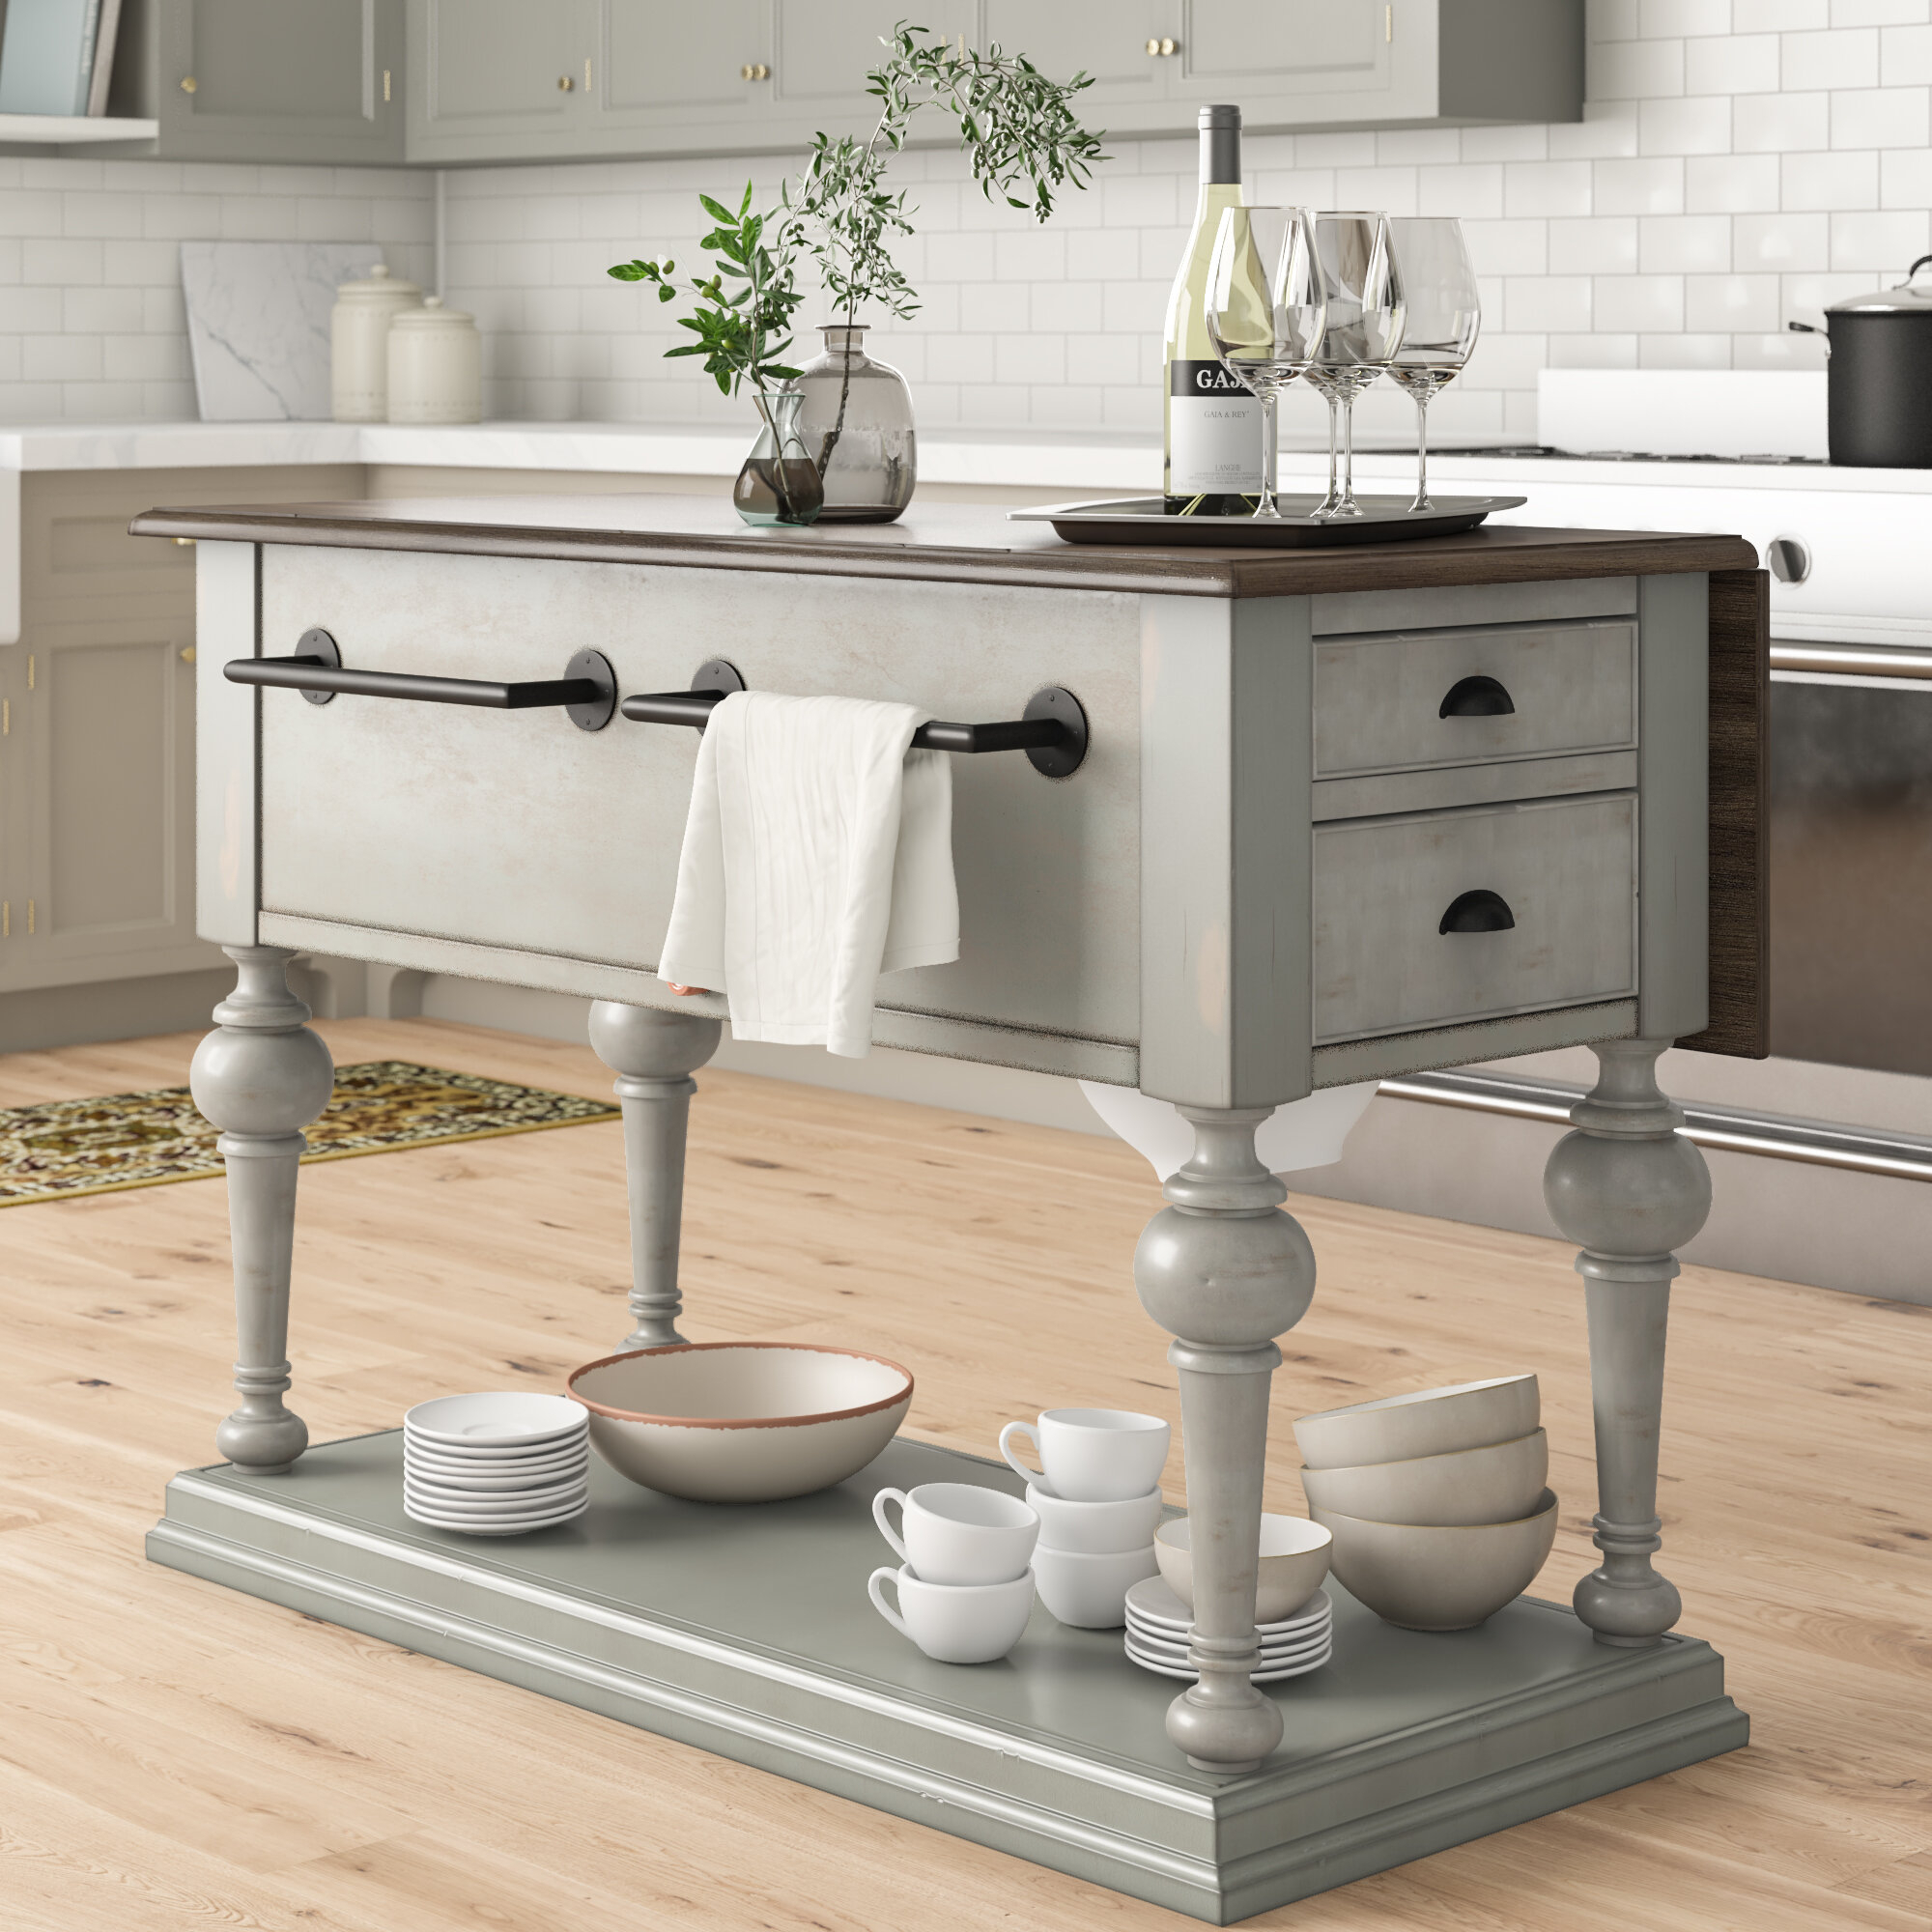 Sandbach Kitchen Island With Wood Top With Regard To 2018 Elworth Kitchen Island (View 8 of 25)